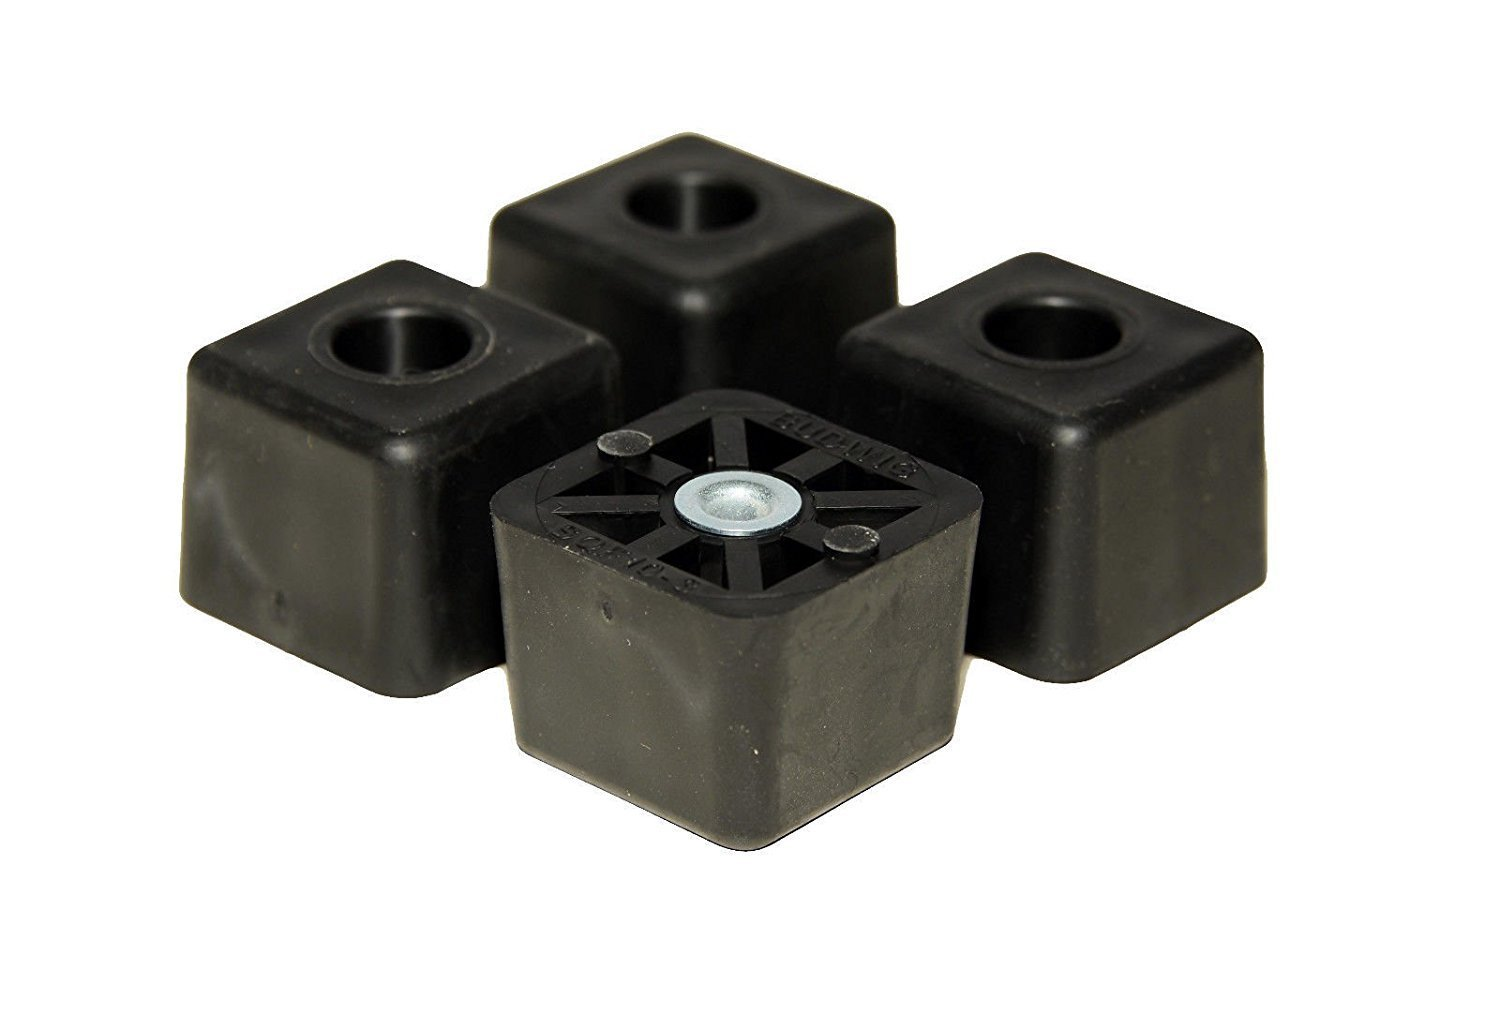 20 Large Cube Square Rubber Feet Bumpers - 1.125 H X 1.500 W - Made in USA Heavy Duty Non Marking for Furniture, Tables, Chairs, Desks, Benches, Sofas, Chests, Other Large Items.